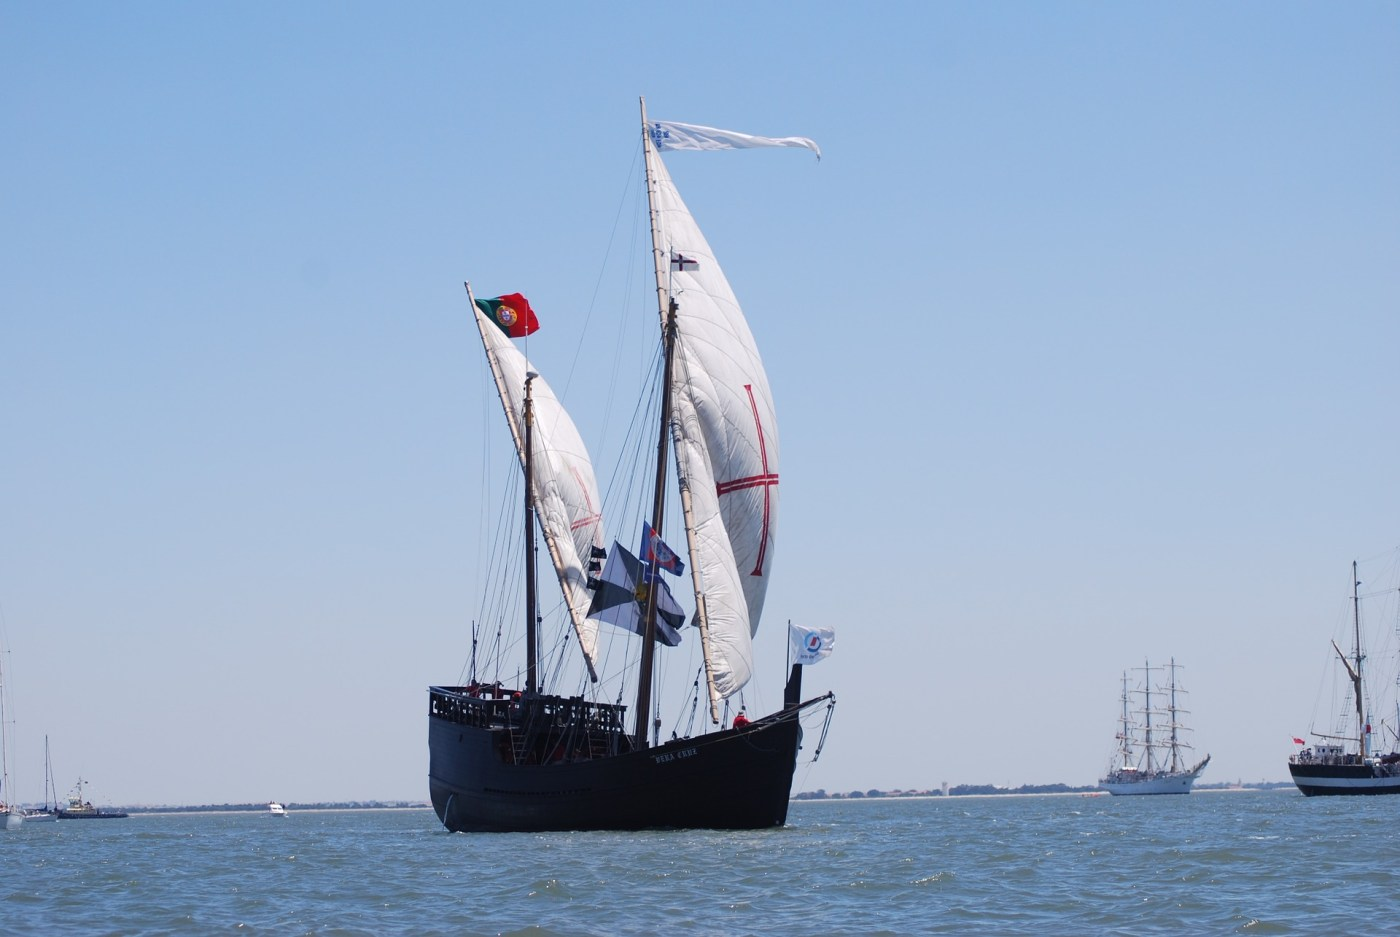 Regressar a Portugal